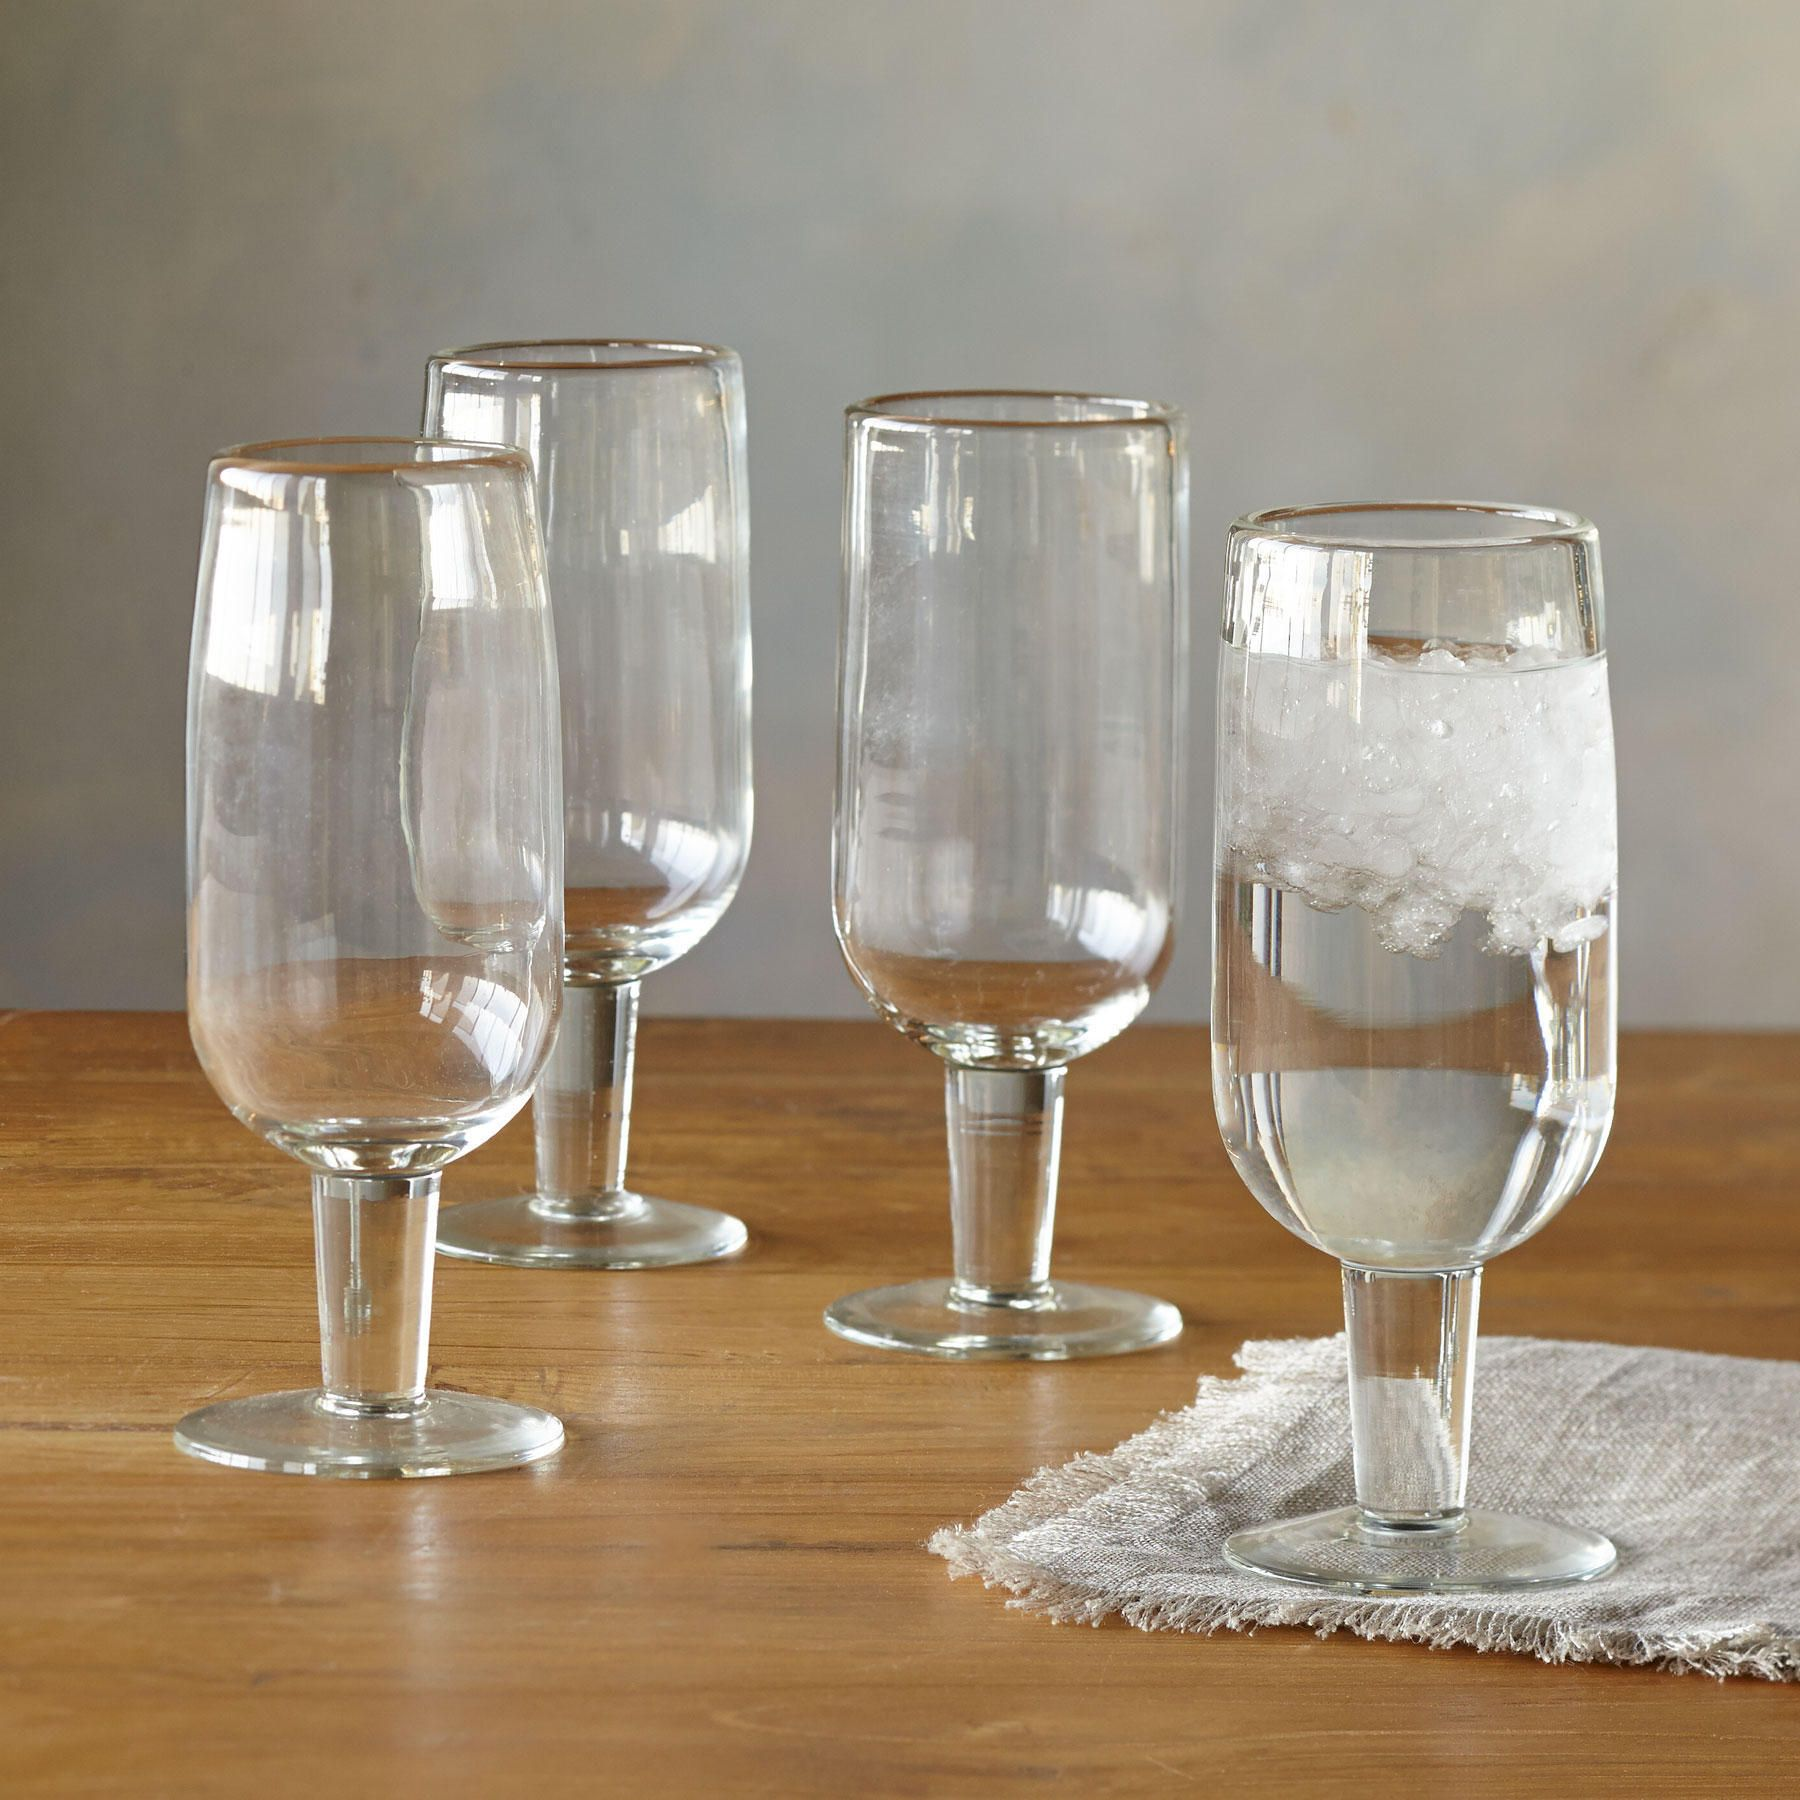 darby water glasses set of   traditional handblown glass takes  - darby water glasses set of   traditional handblown glass takes on moderndimensions